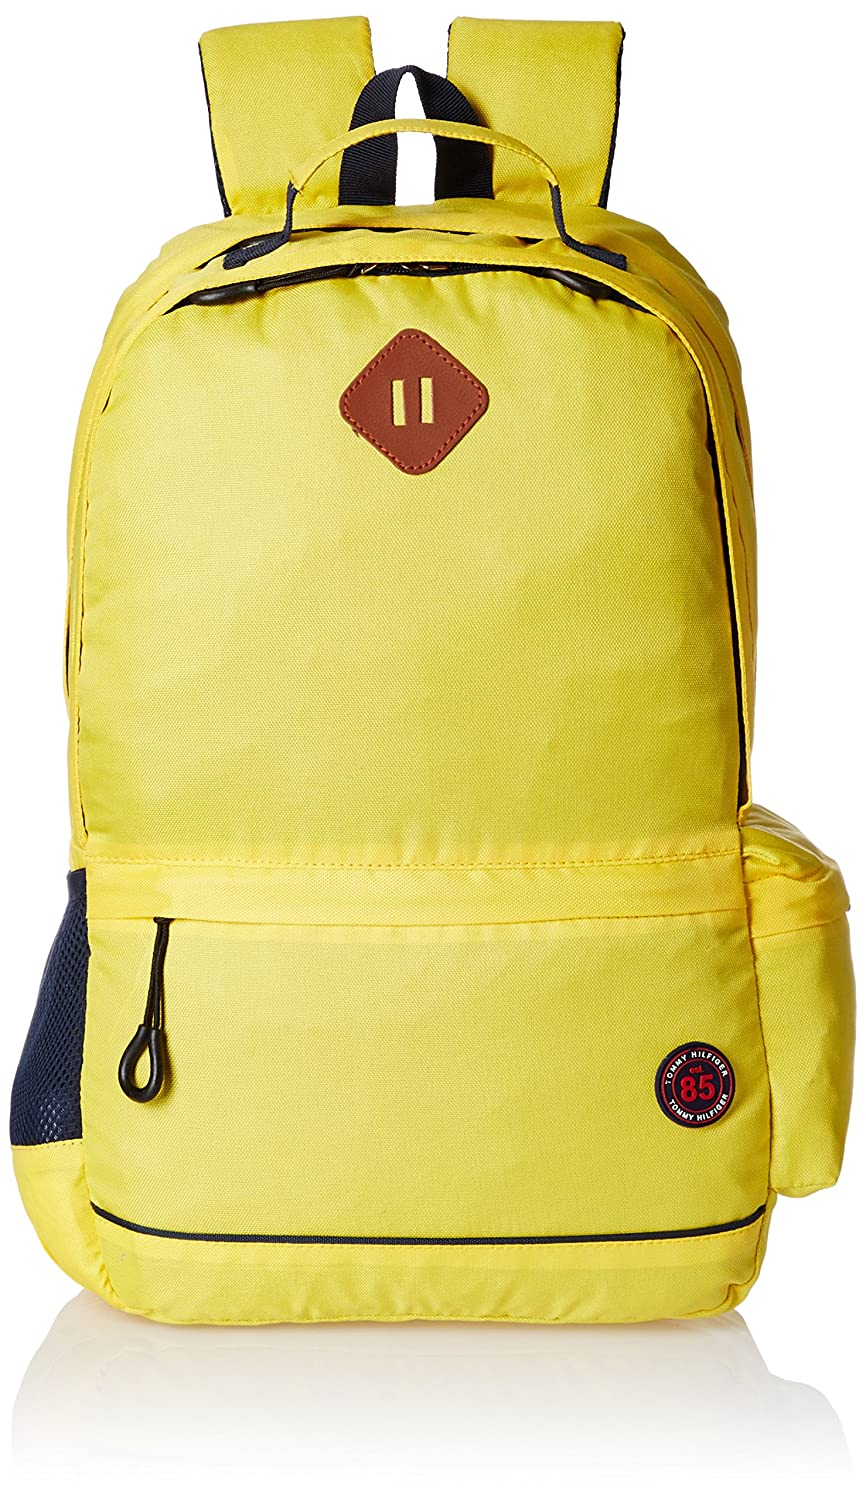 tommy-hilfiger-yellow-casual-backpack